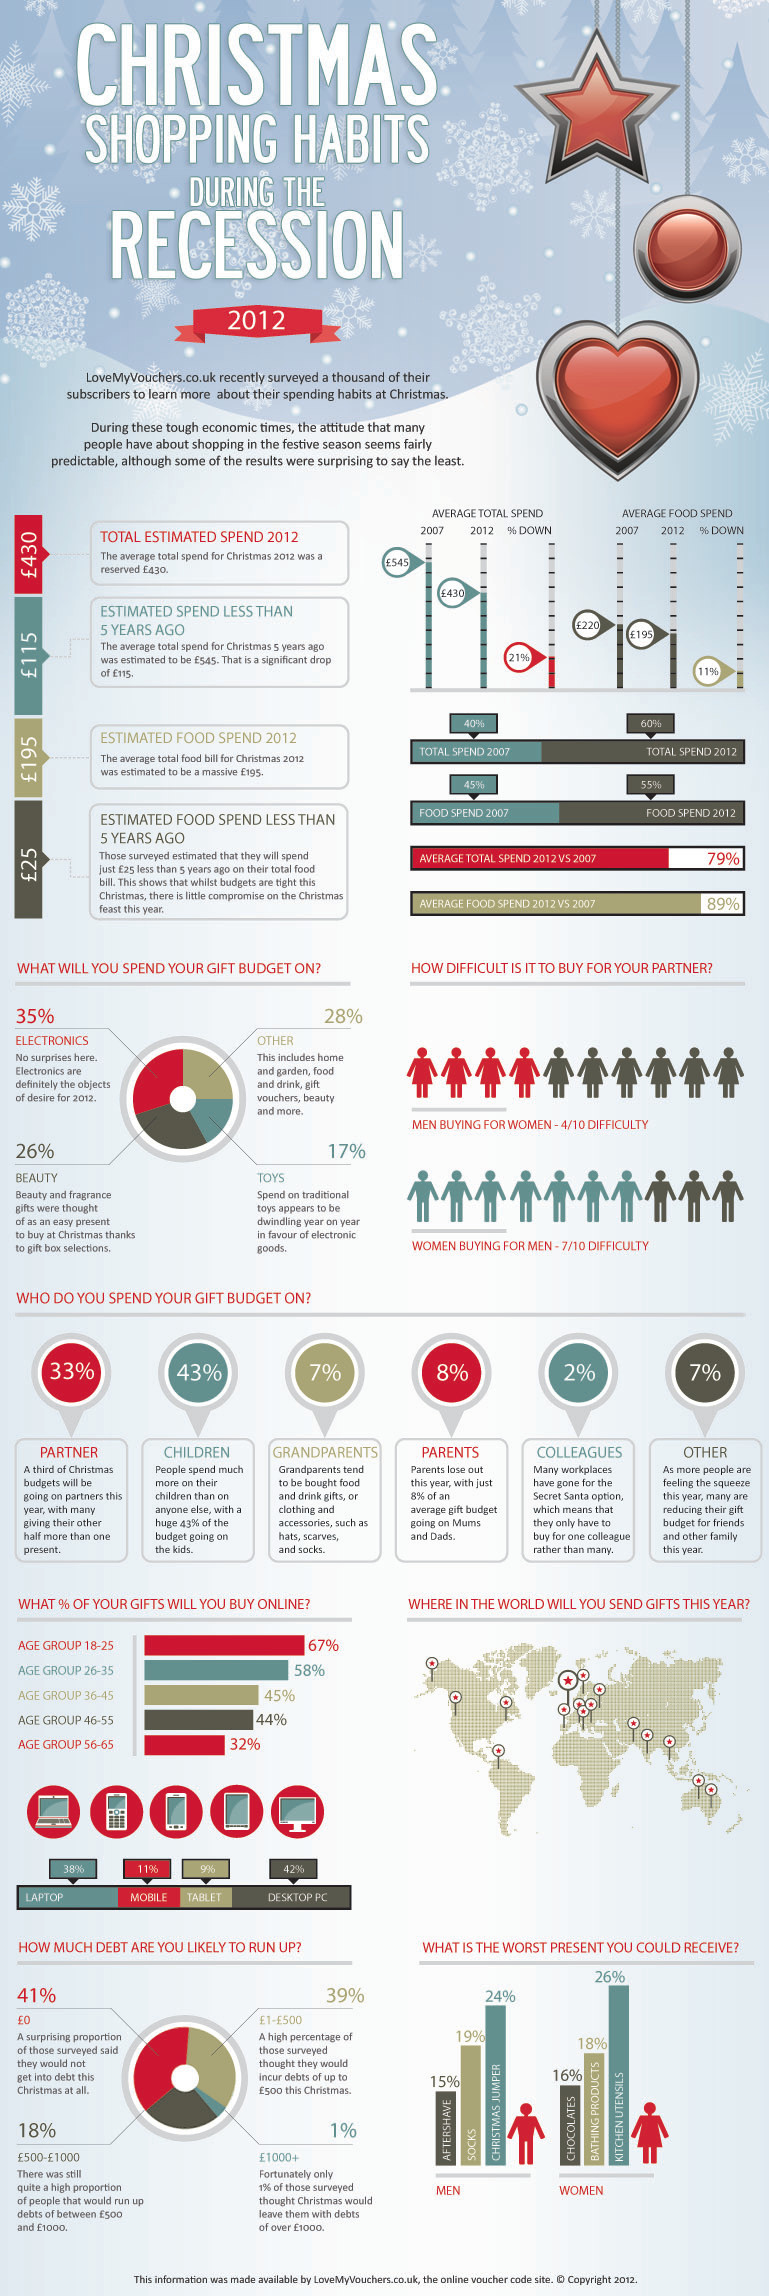 Infographic - Christmas shopping habits during the recession